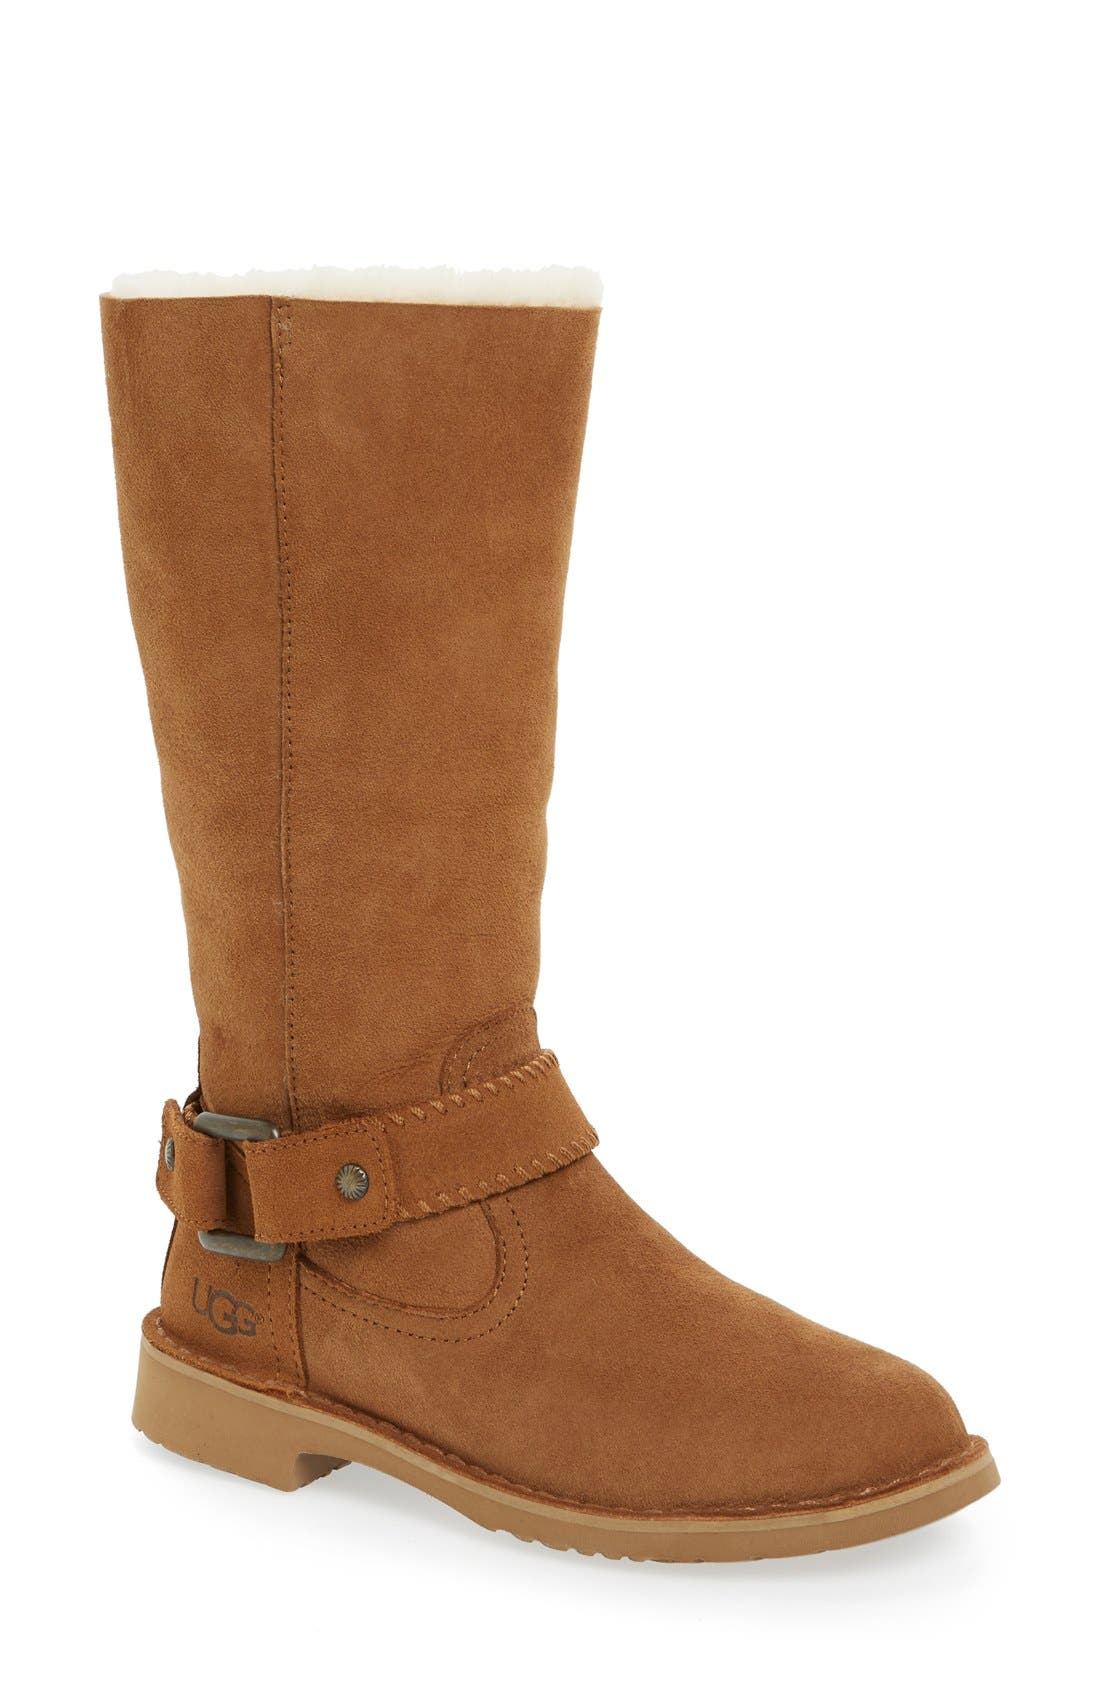 Alternate Image 1 Selected - UGG® Braiden Cuff Boot (Women)